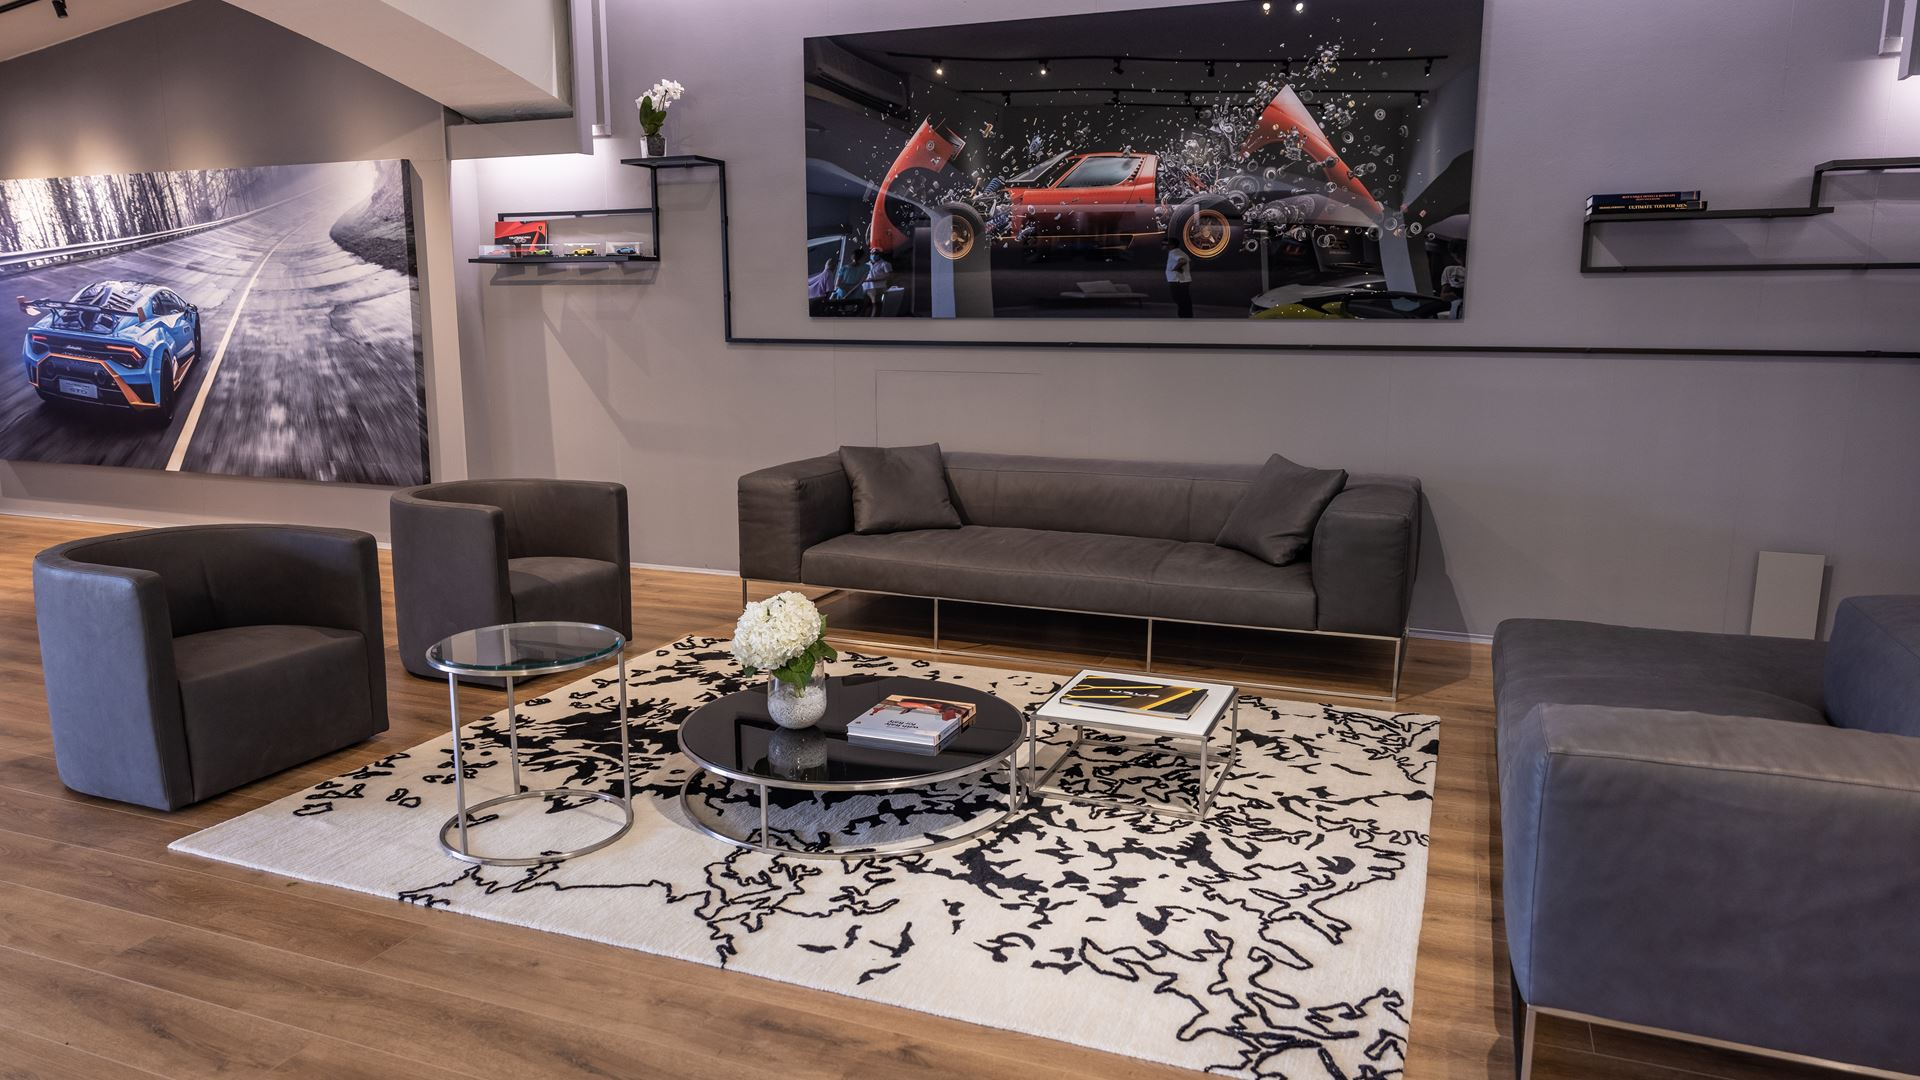 Lamborghini Lounge in Porto Cervo: exclusivity, lifestyle and product innovations, until September - Image 3